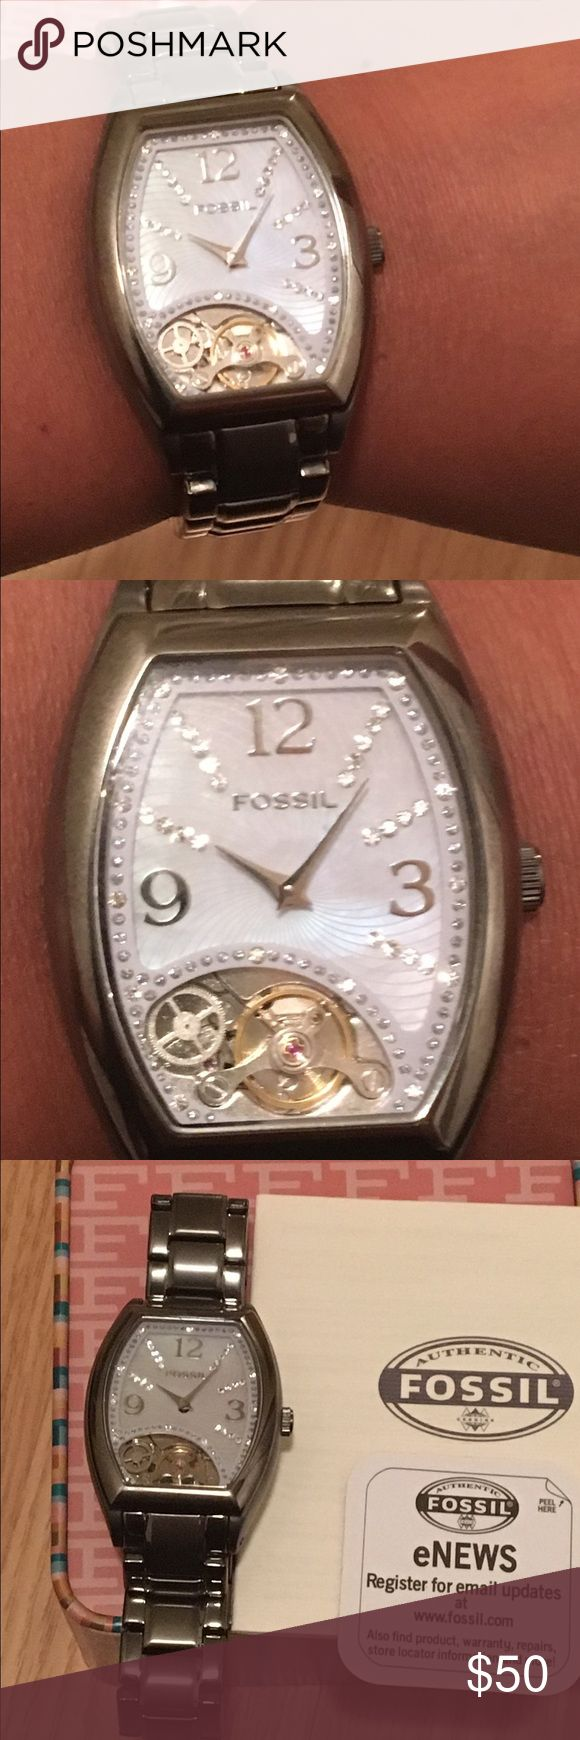 Beautiful Fossil watch for women. Women's Fossil Watch. Stainless steel. Rhinestones on face. Worn once. Great gift for that special someone. Fossil Accessories Watches